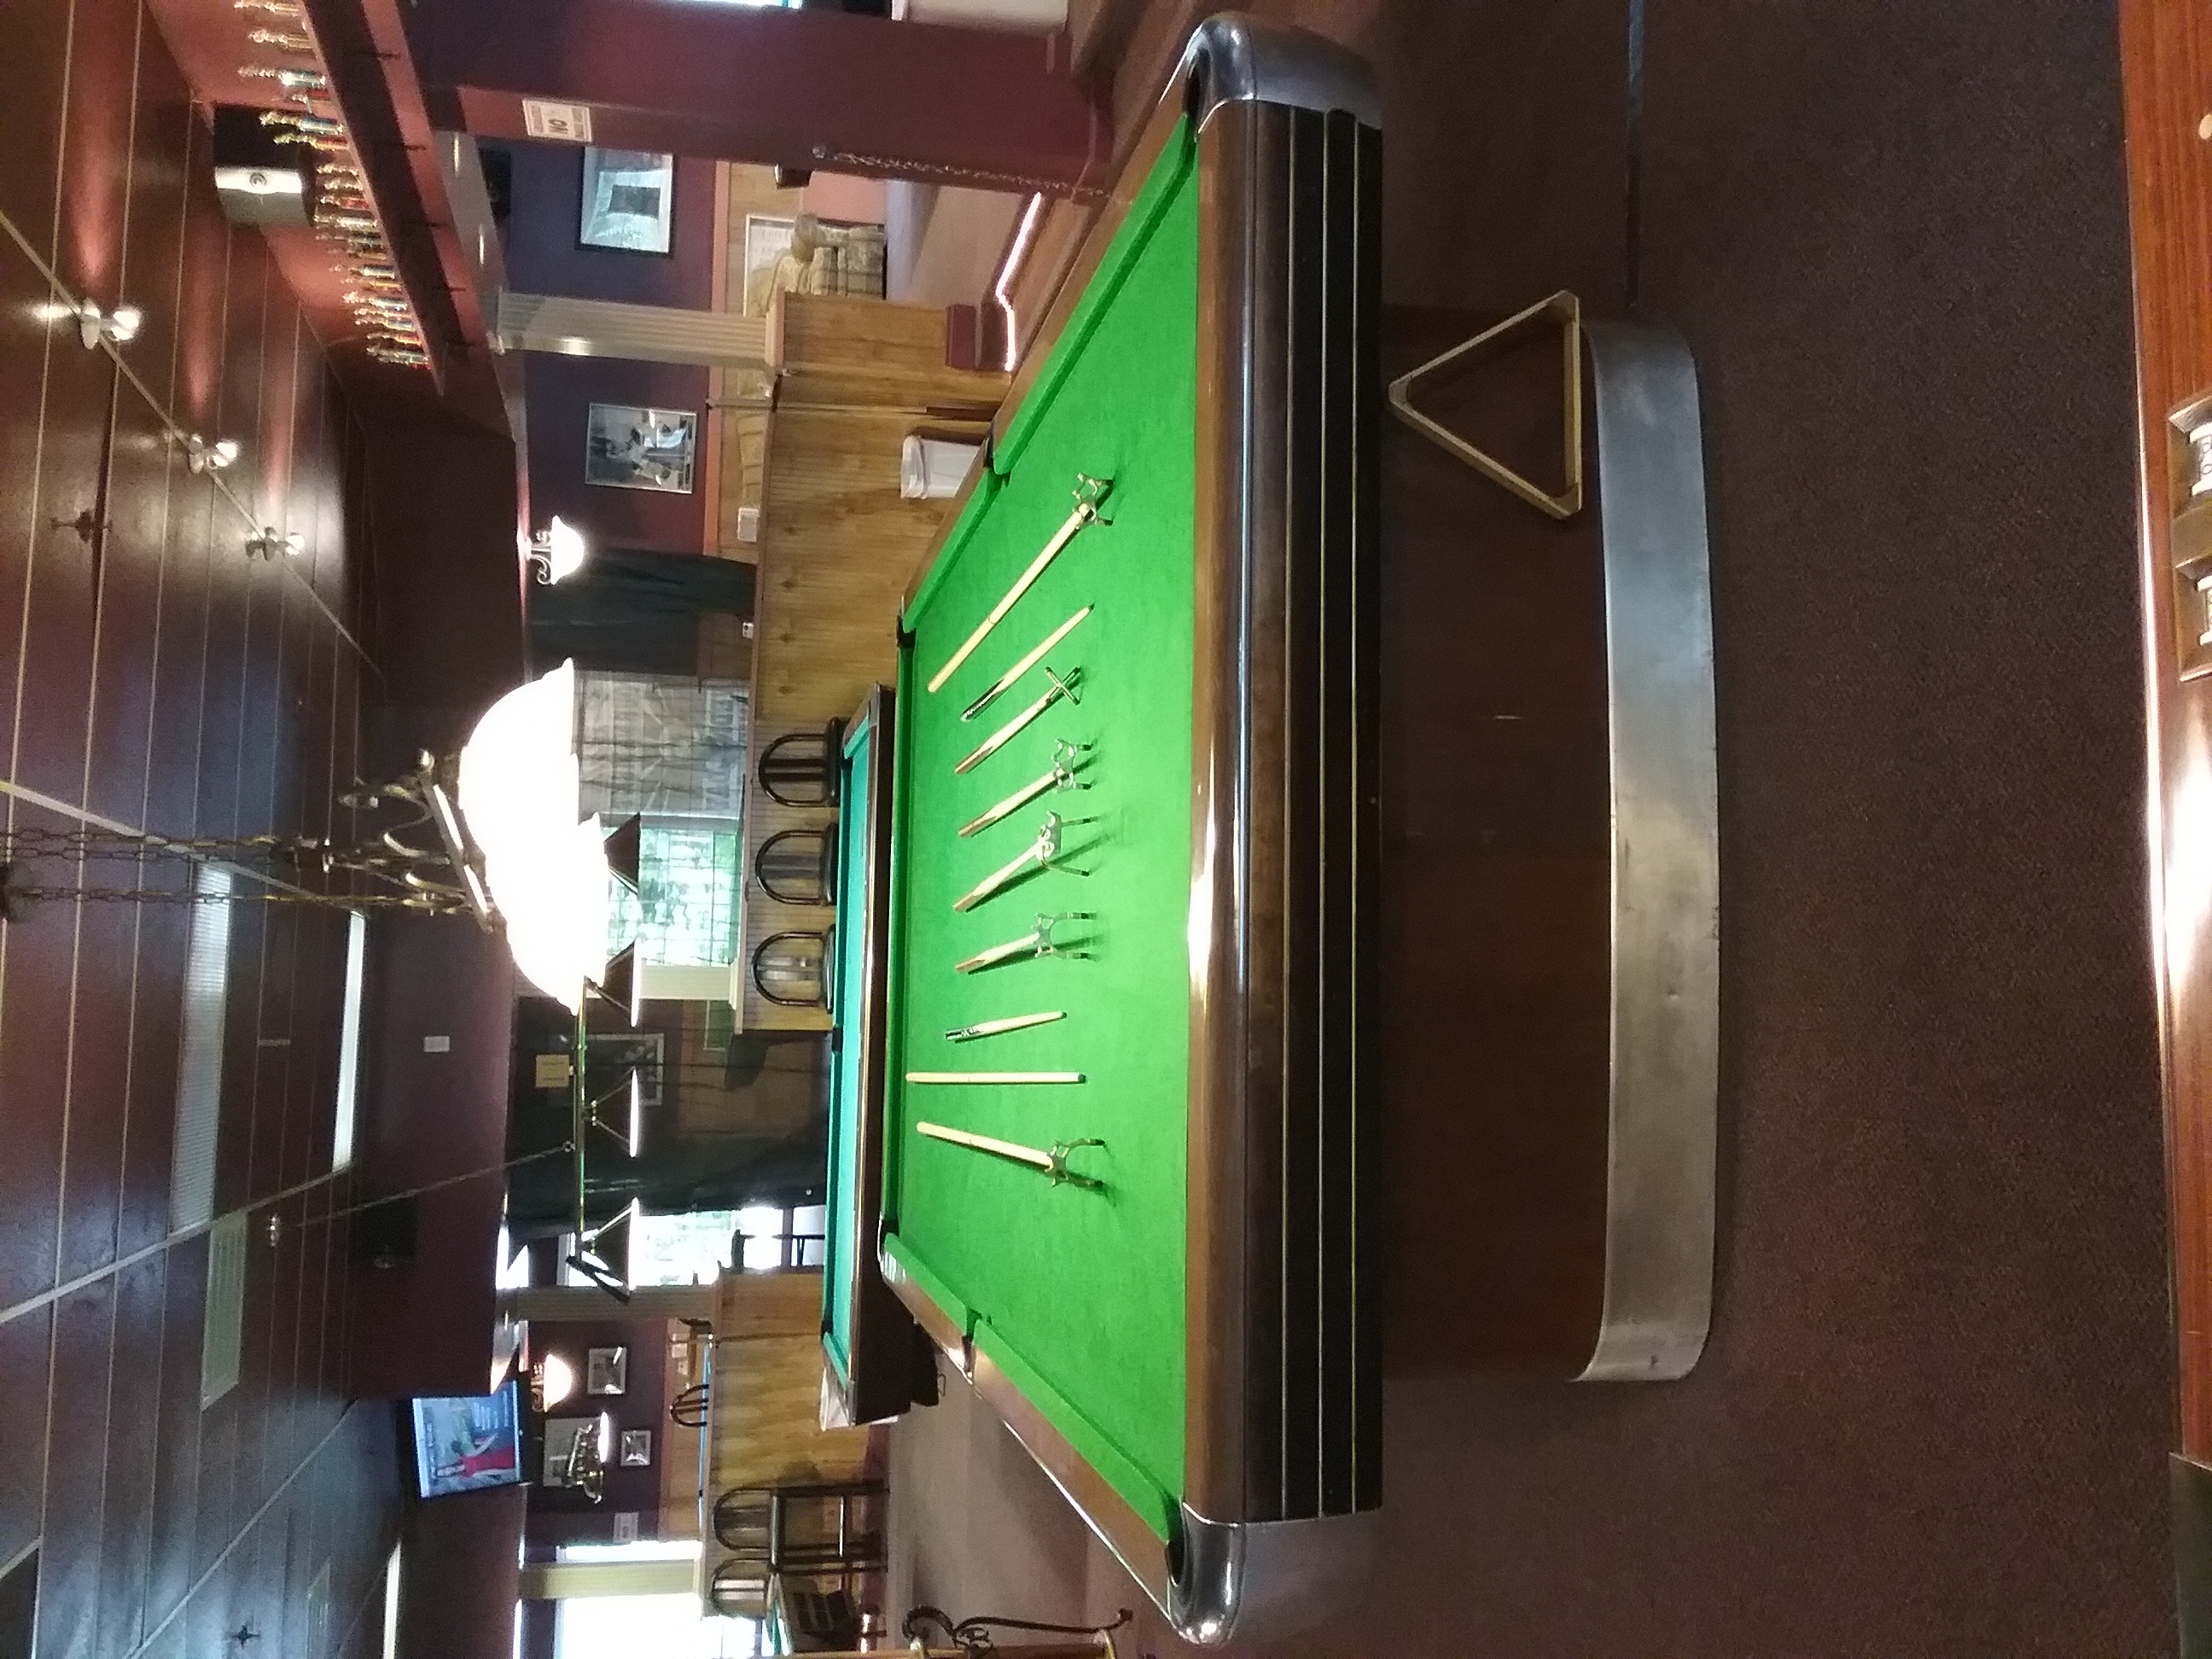 Snooker bridges and cue's